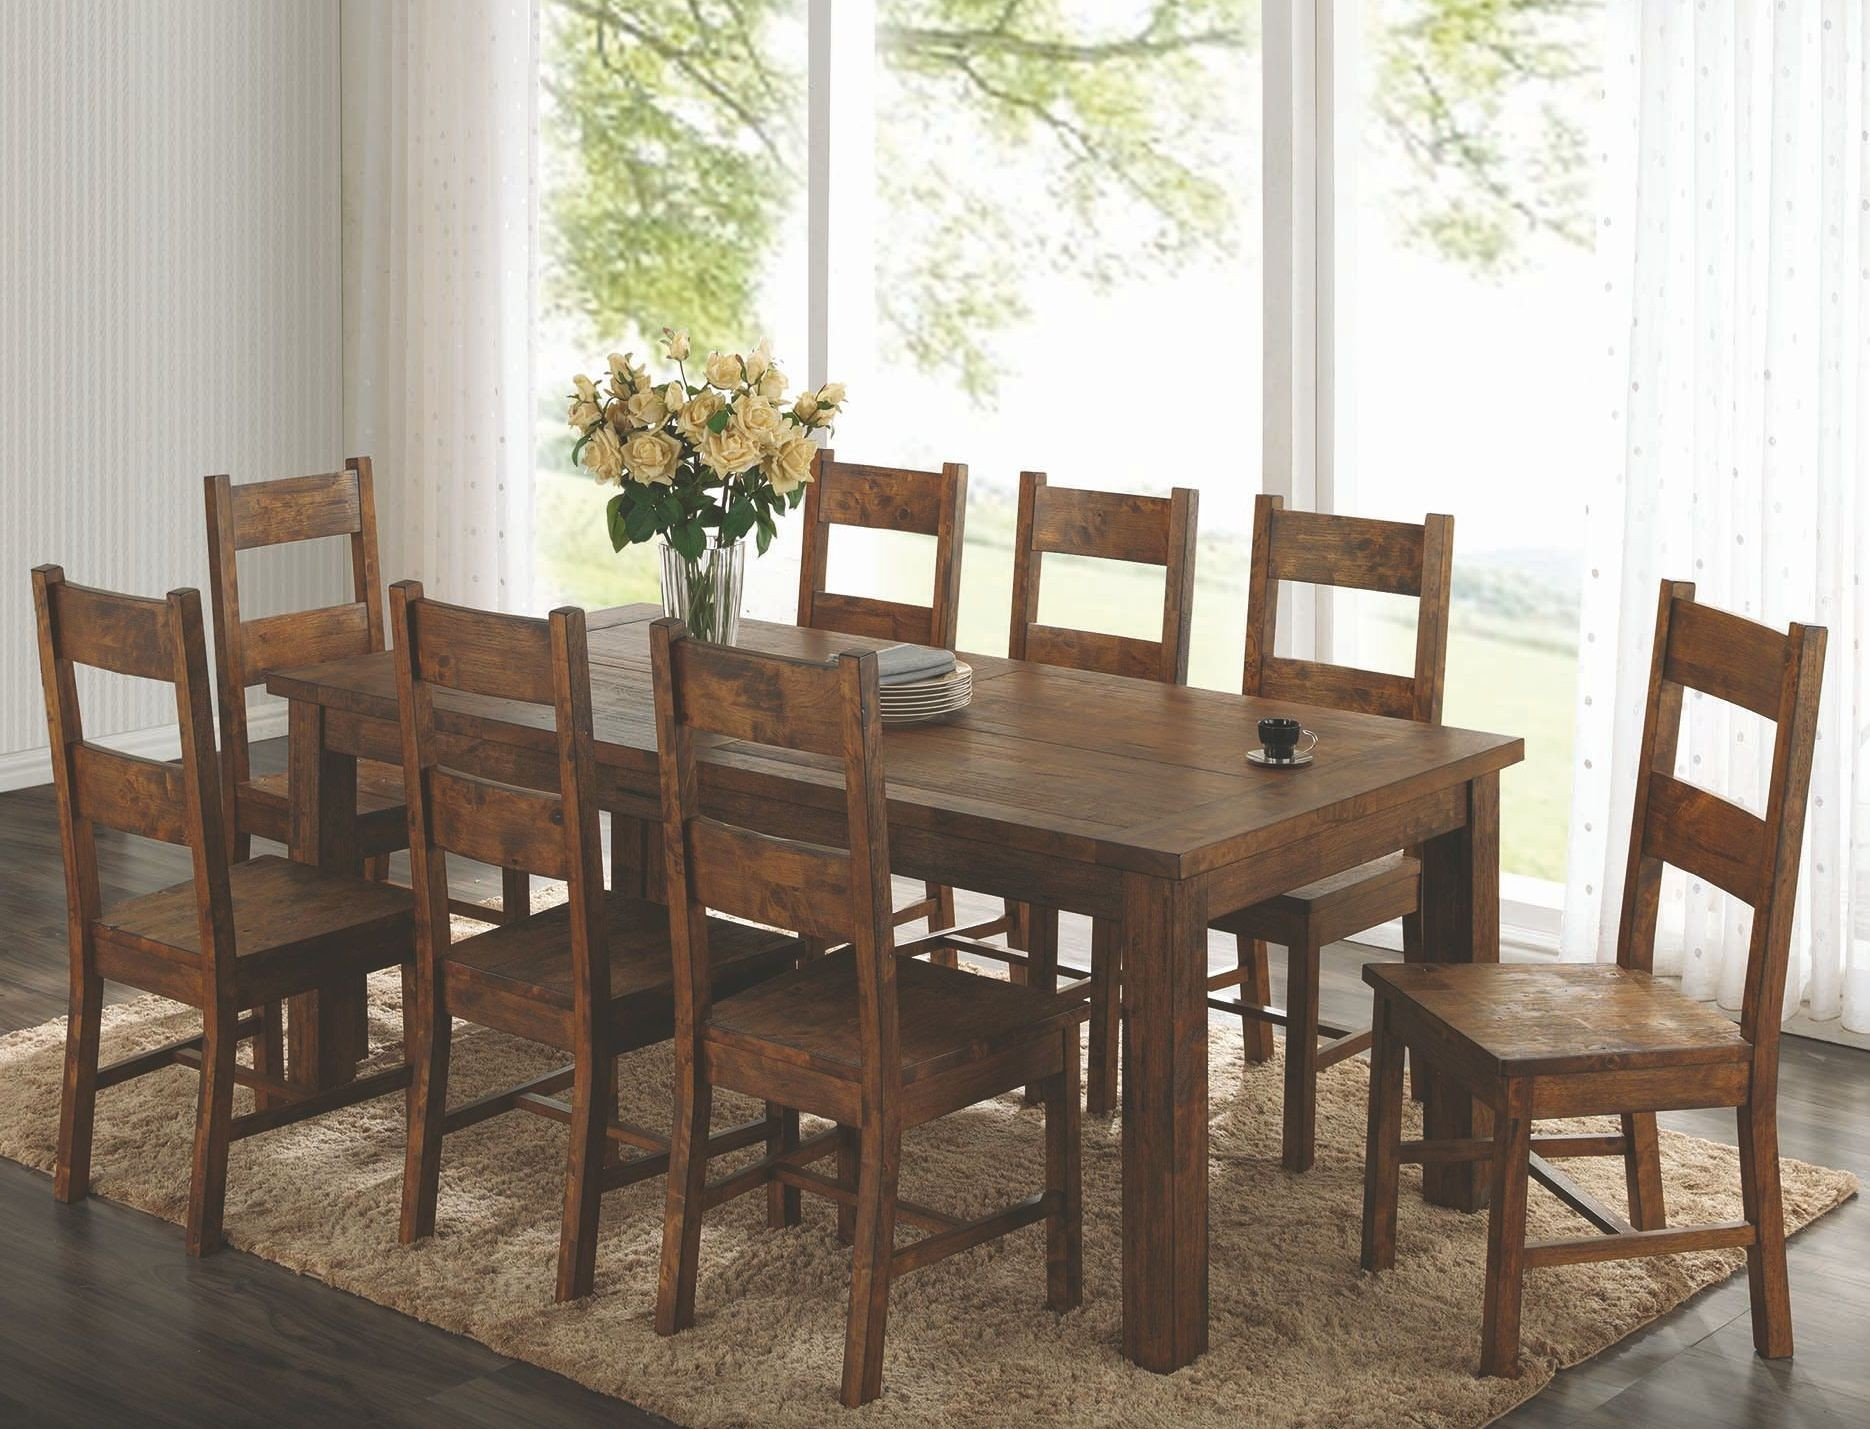 Coleman Rustic Golden Brown Rectangular Dining Room Set ...